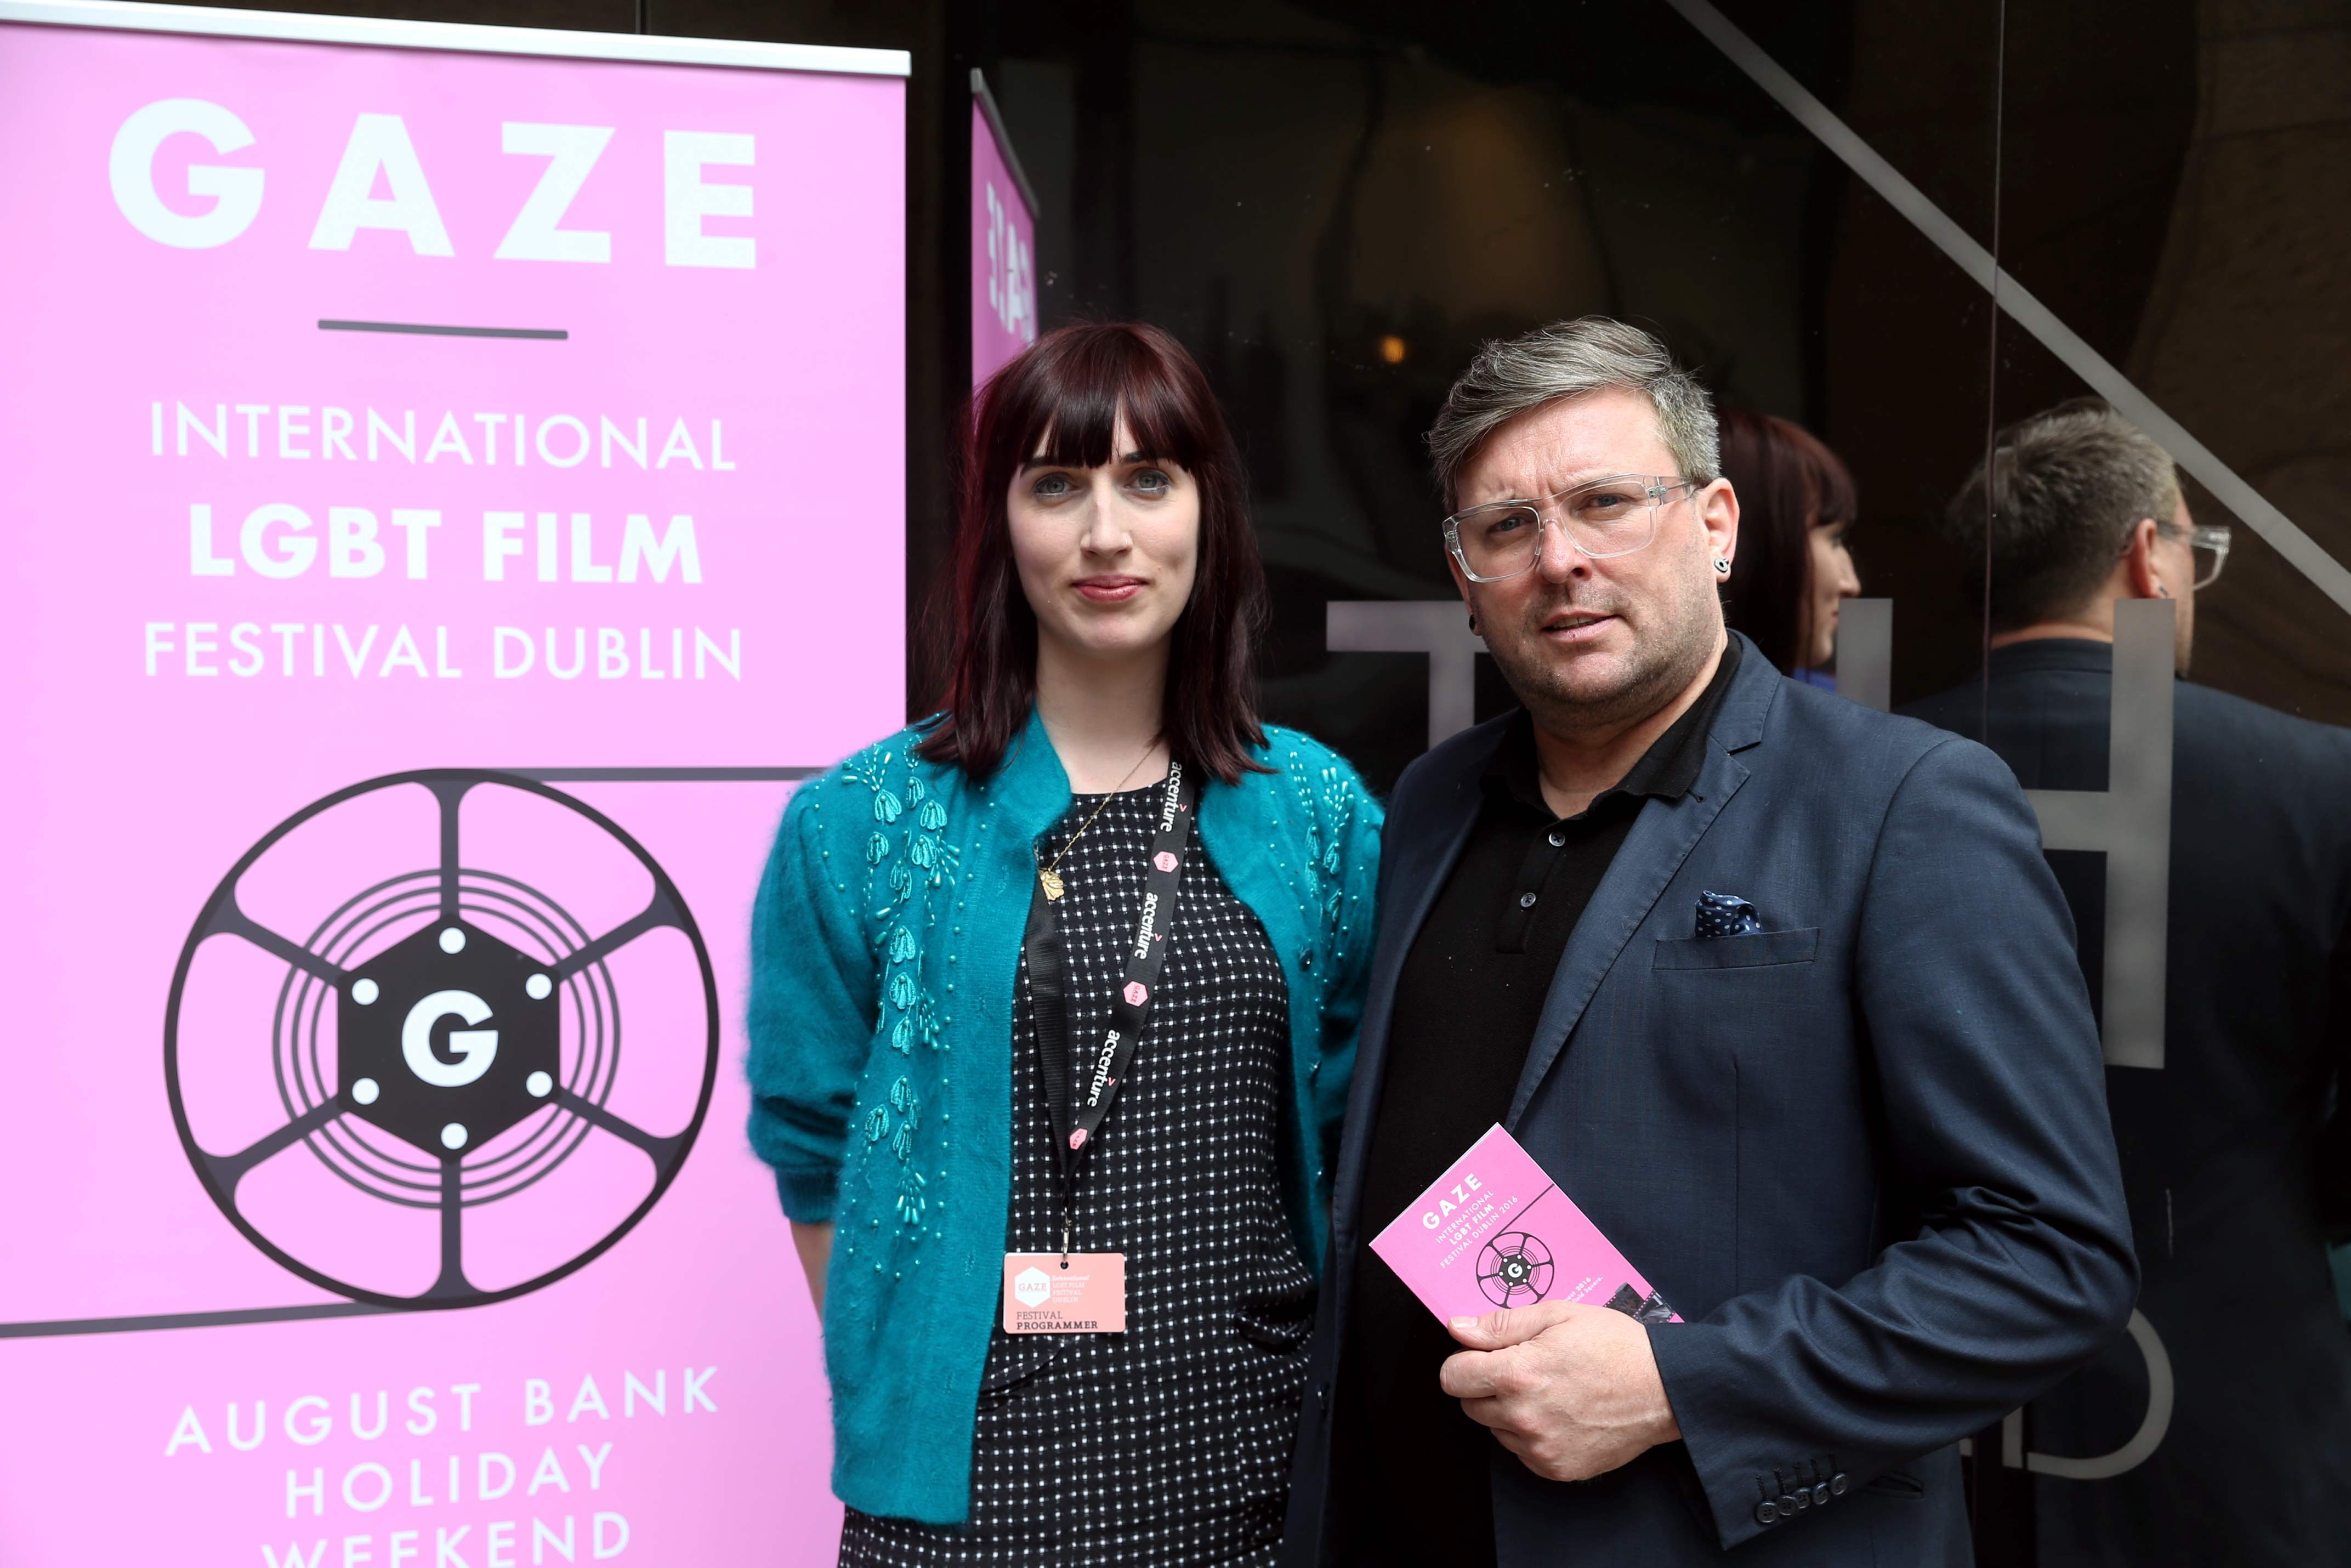 film festival dublin gay